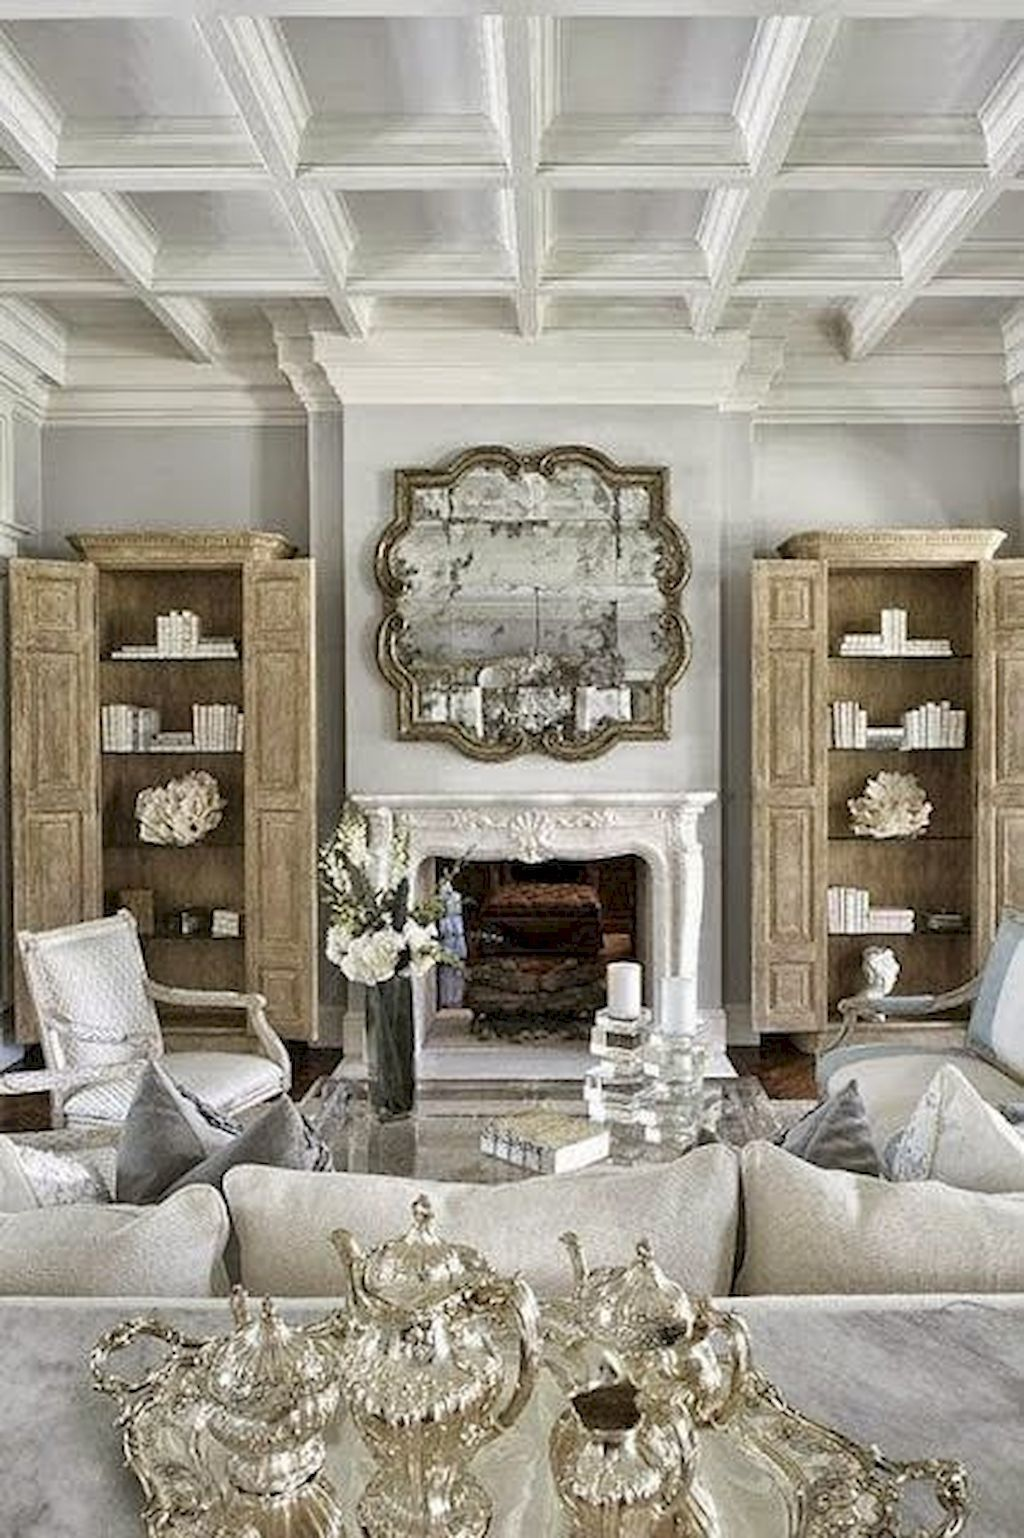 Fancy French Country Living Room Decorating Ideas 7 Homevialand Com French Country Decorating Living Room Country Living Room Design French Country Living Room